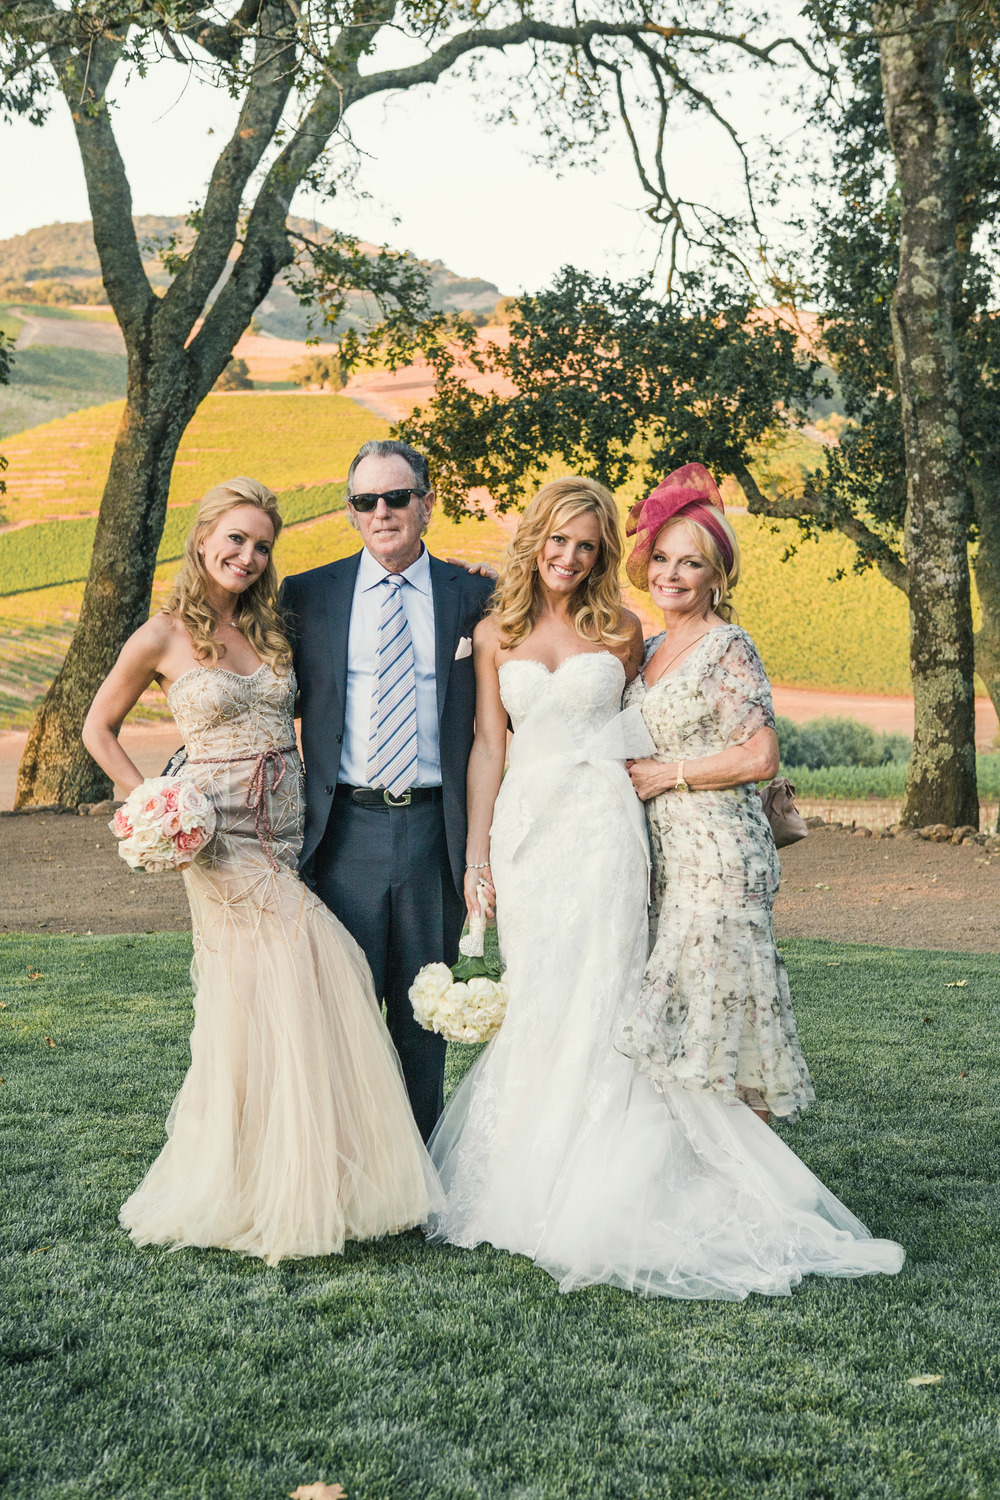 N sonoma Wedding Family pic.jpg